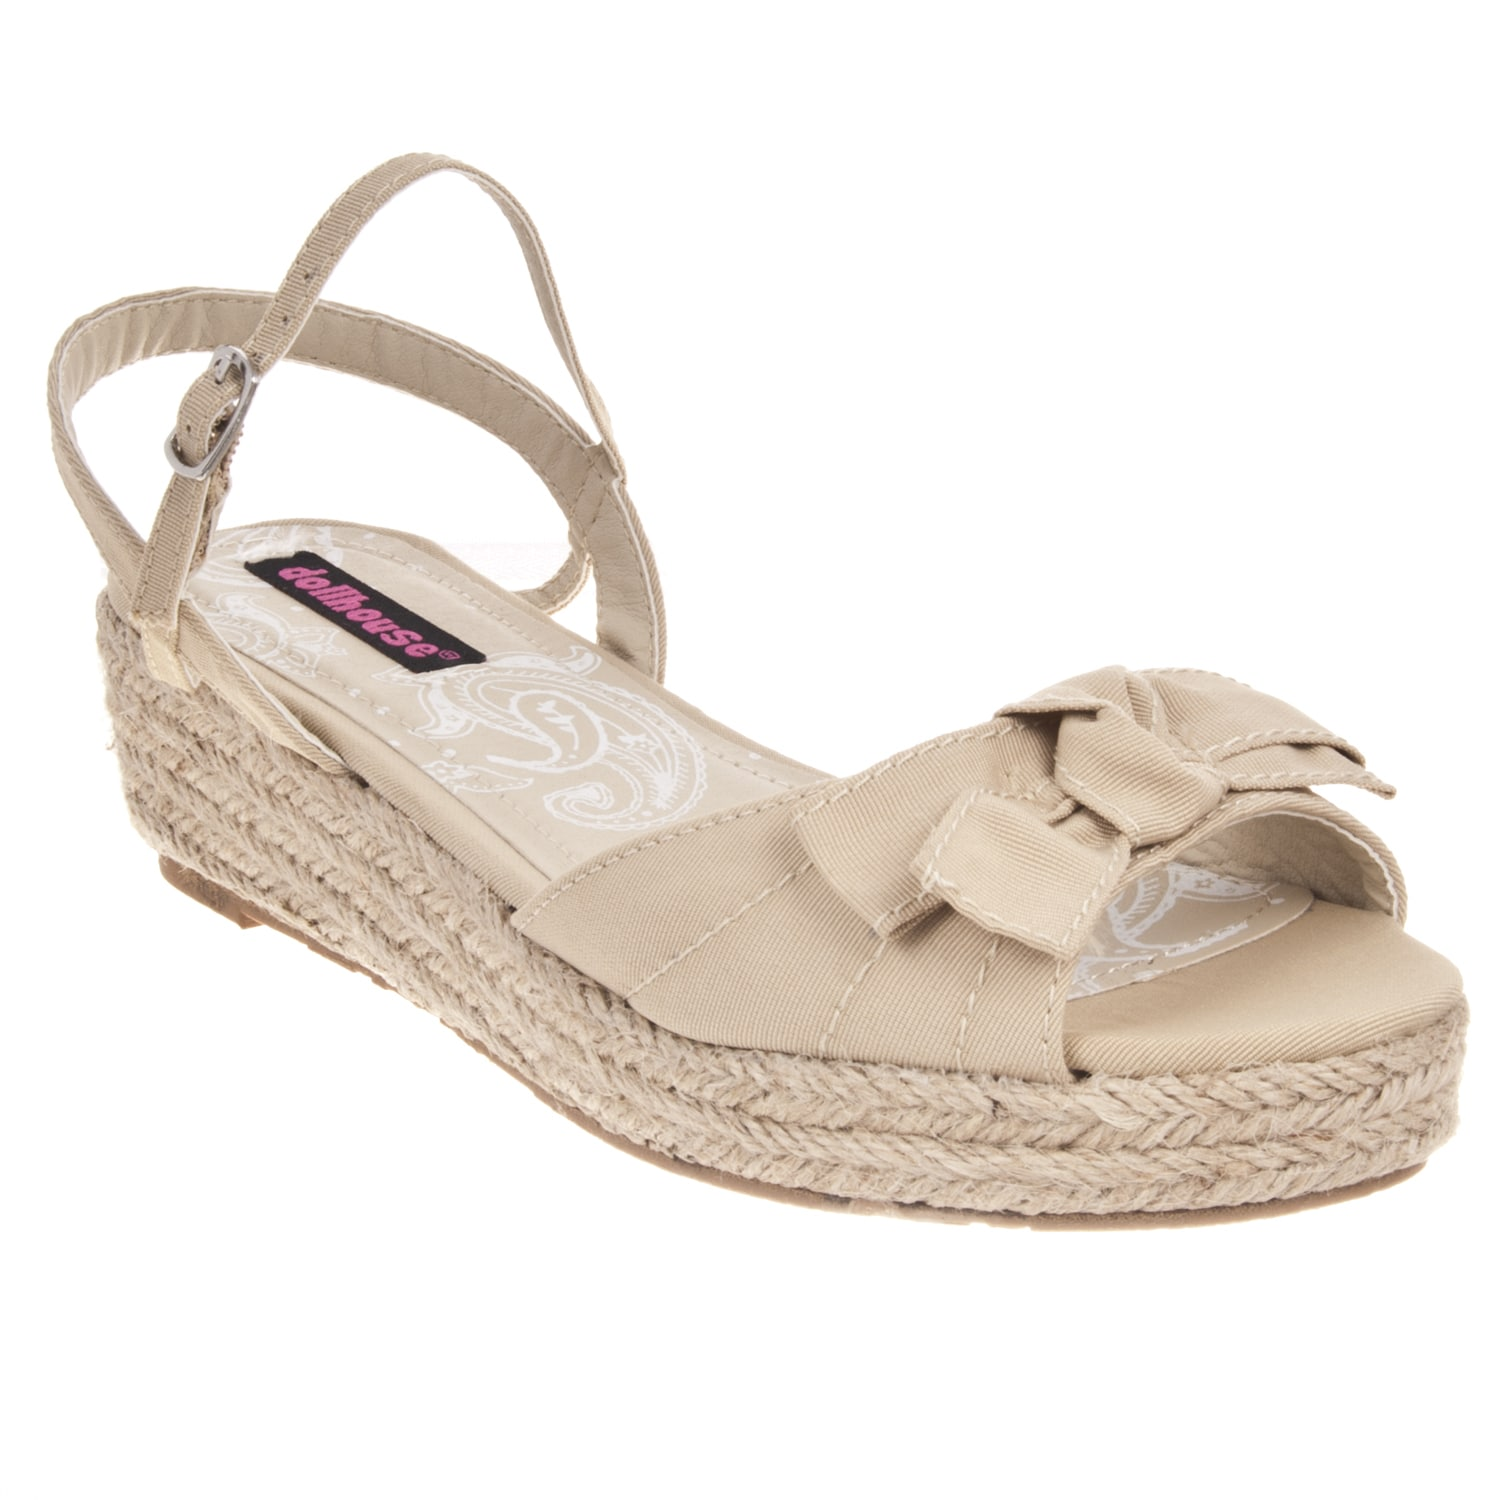 Riverberry Women's 'Quiche' Natural Bow-detail Wedge Sandal